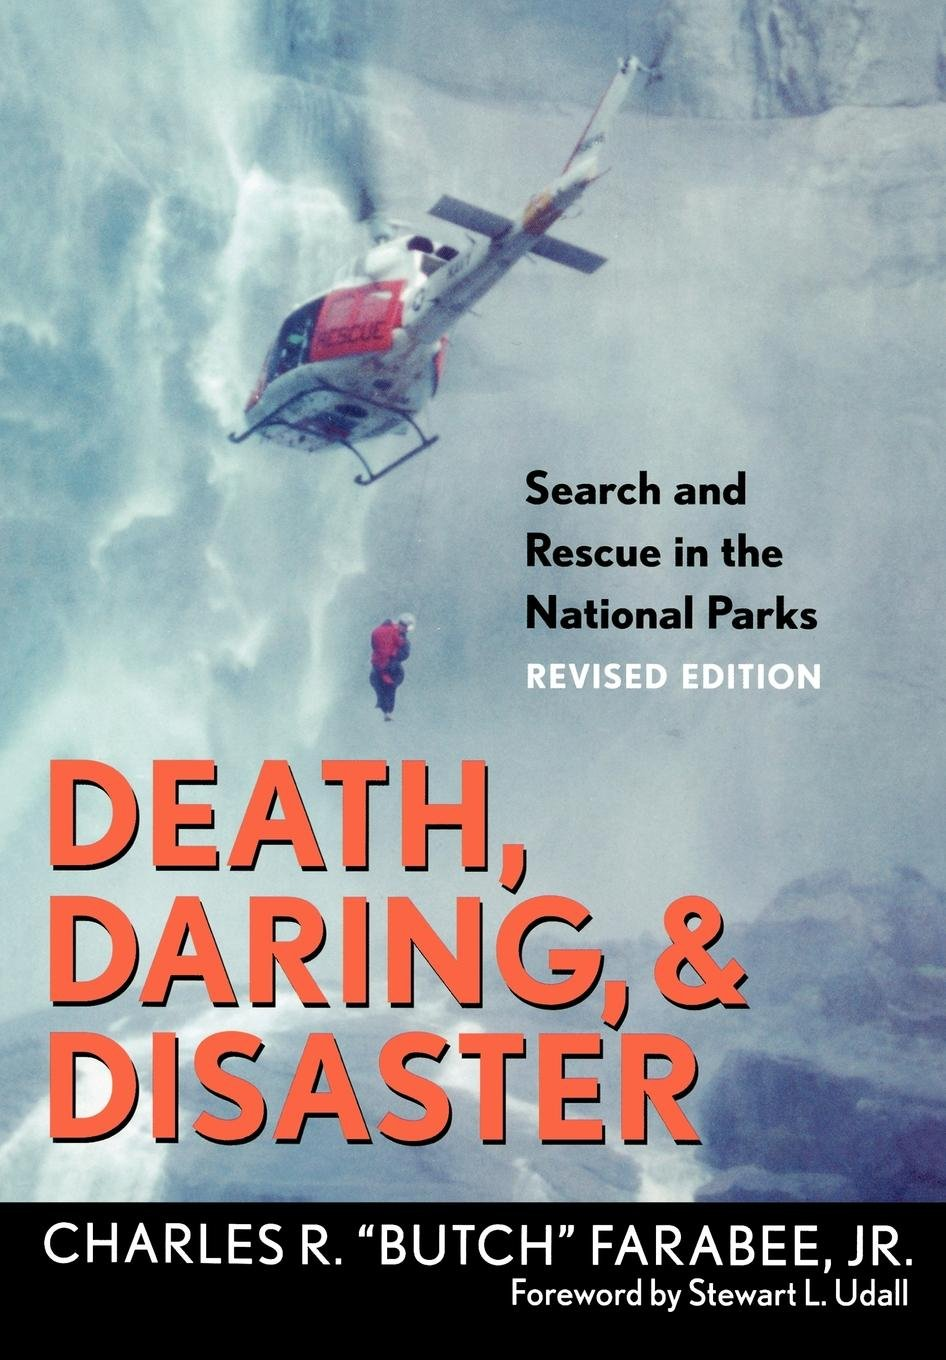 Death, Daring, & Disaster -  Search and Rescue in the National Parks (Revised Edition)